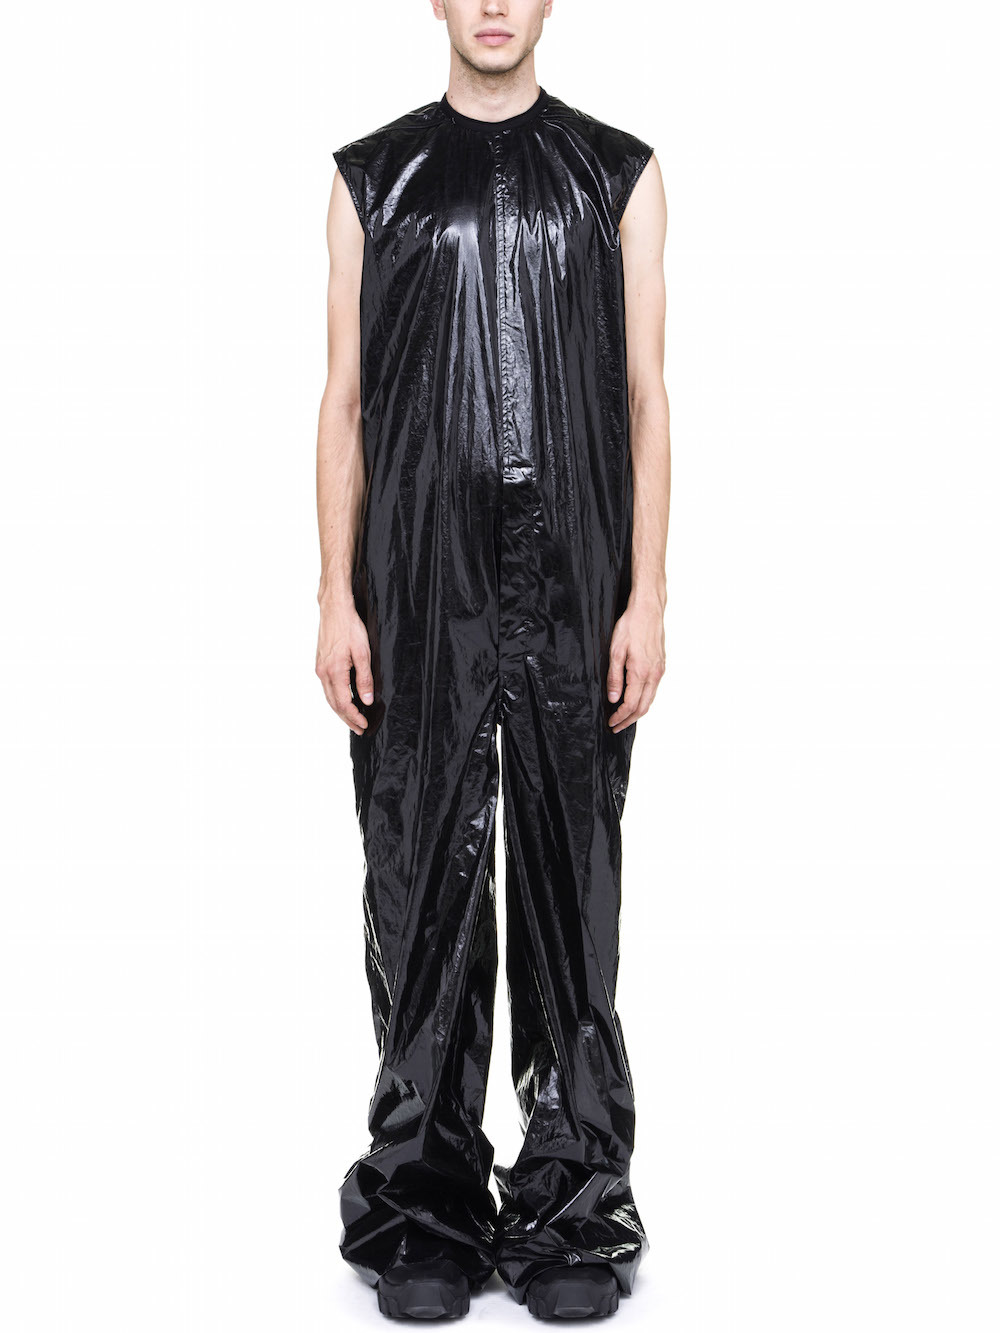 RICK OWENS  OFF-THE-RUNWAY DIRT BODYBAG IN BLACK